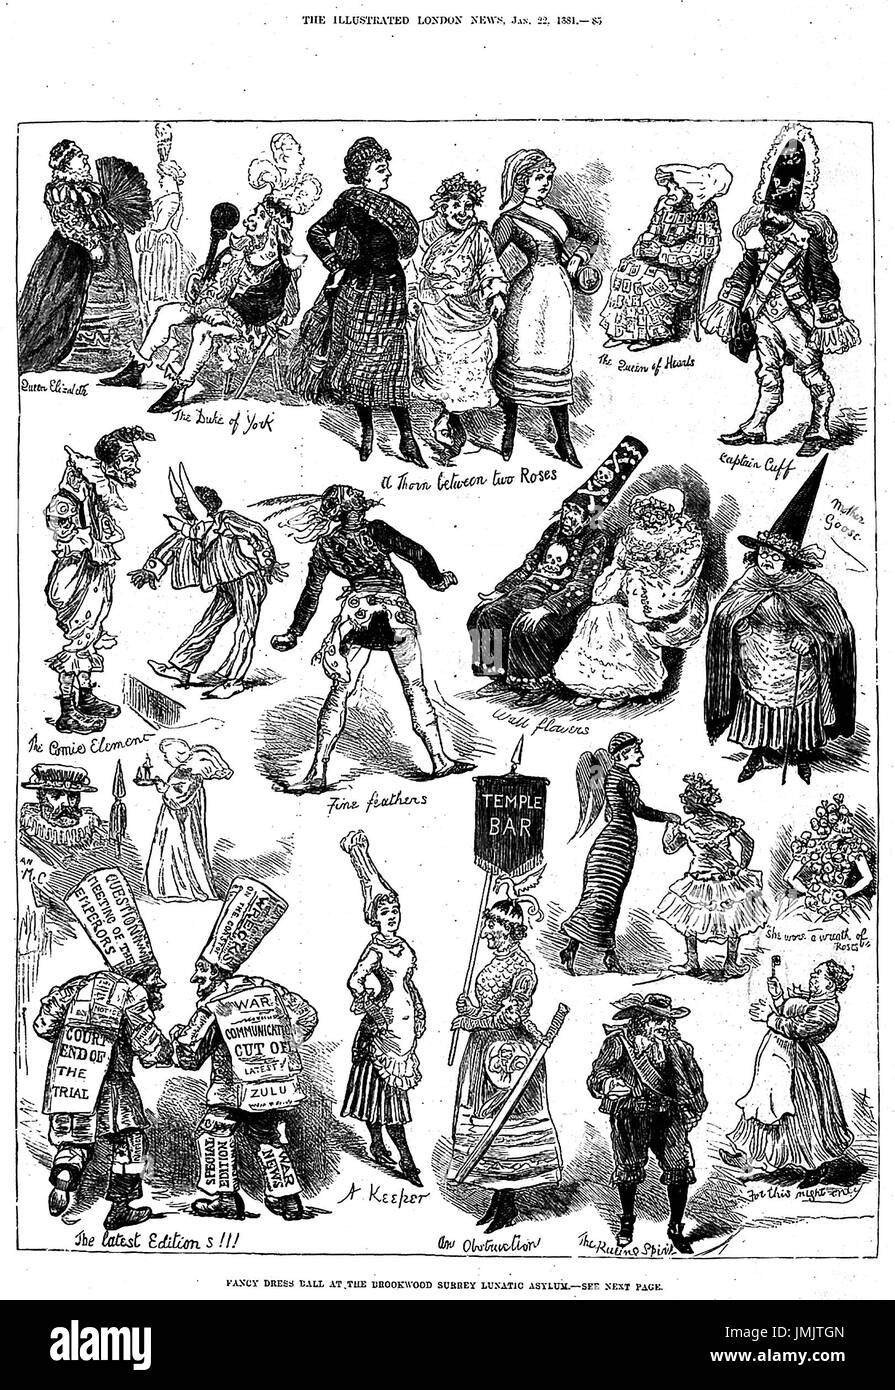 FANCY DRESS BALL BROOKWOOD LUNATIC ASYLUM as shown in the Illustrated London News in January 1881 - Stock Image